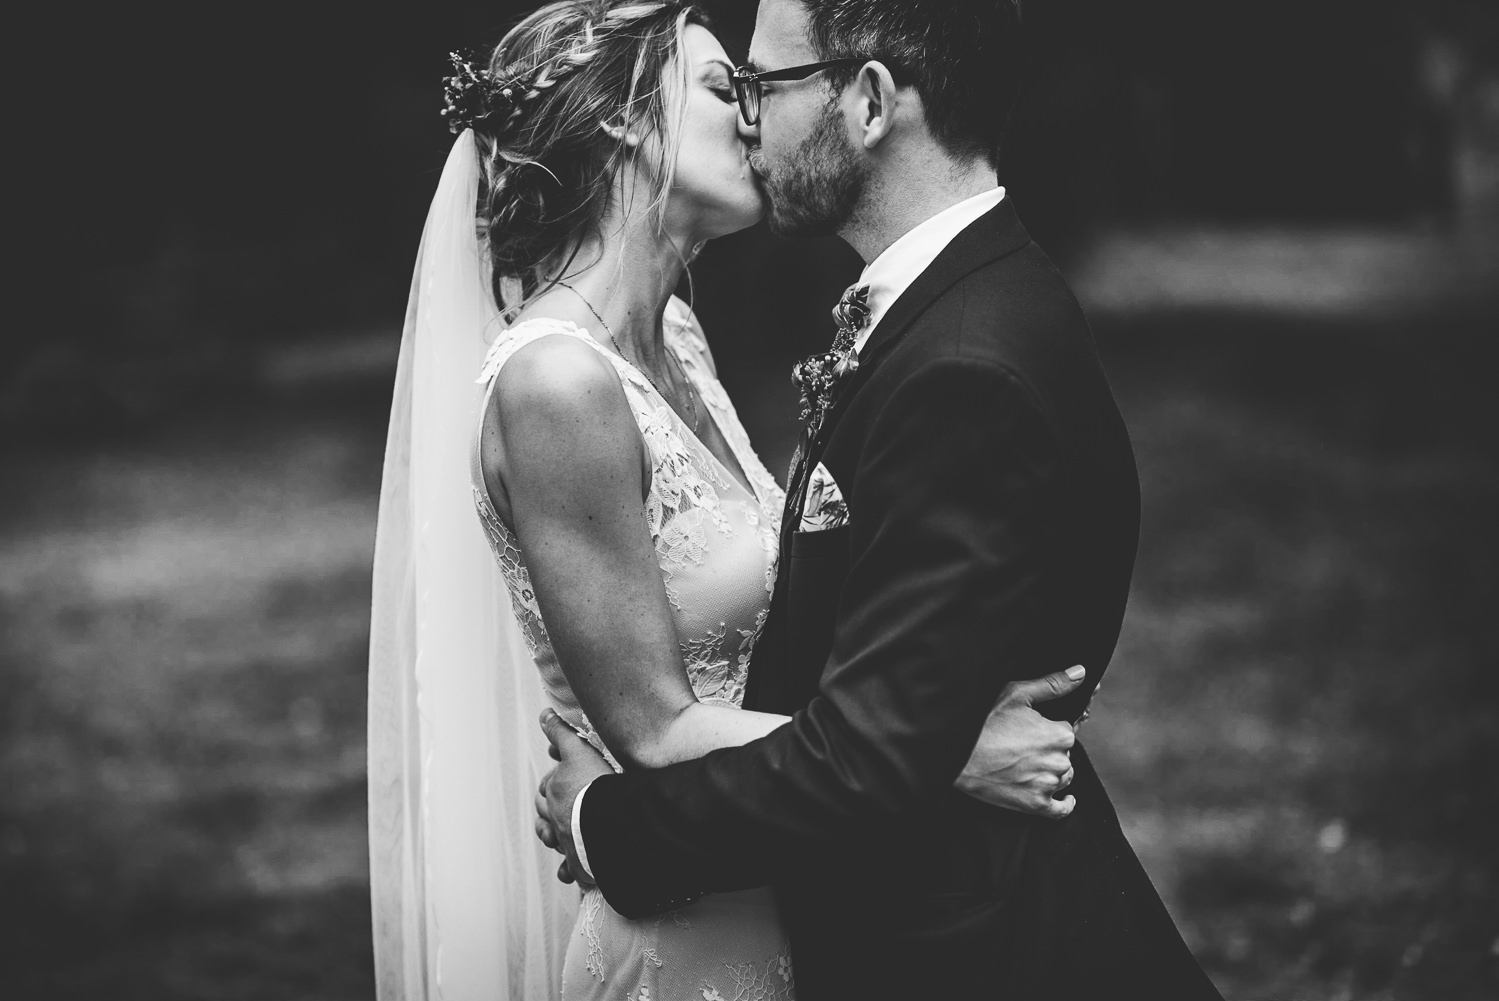 kissing on their wedding day